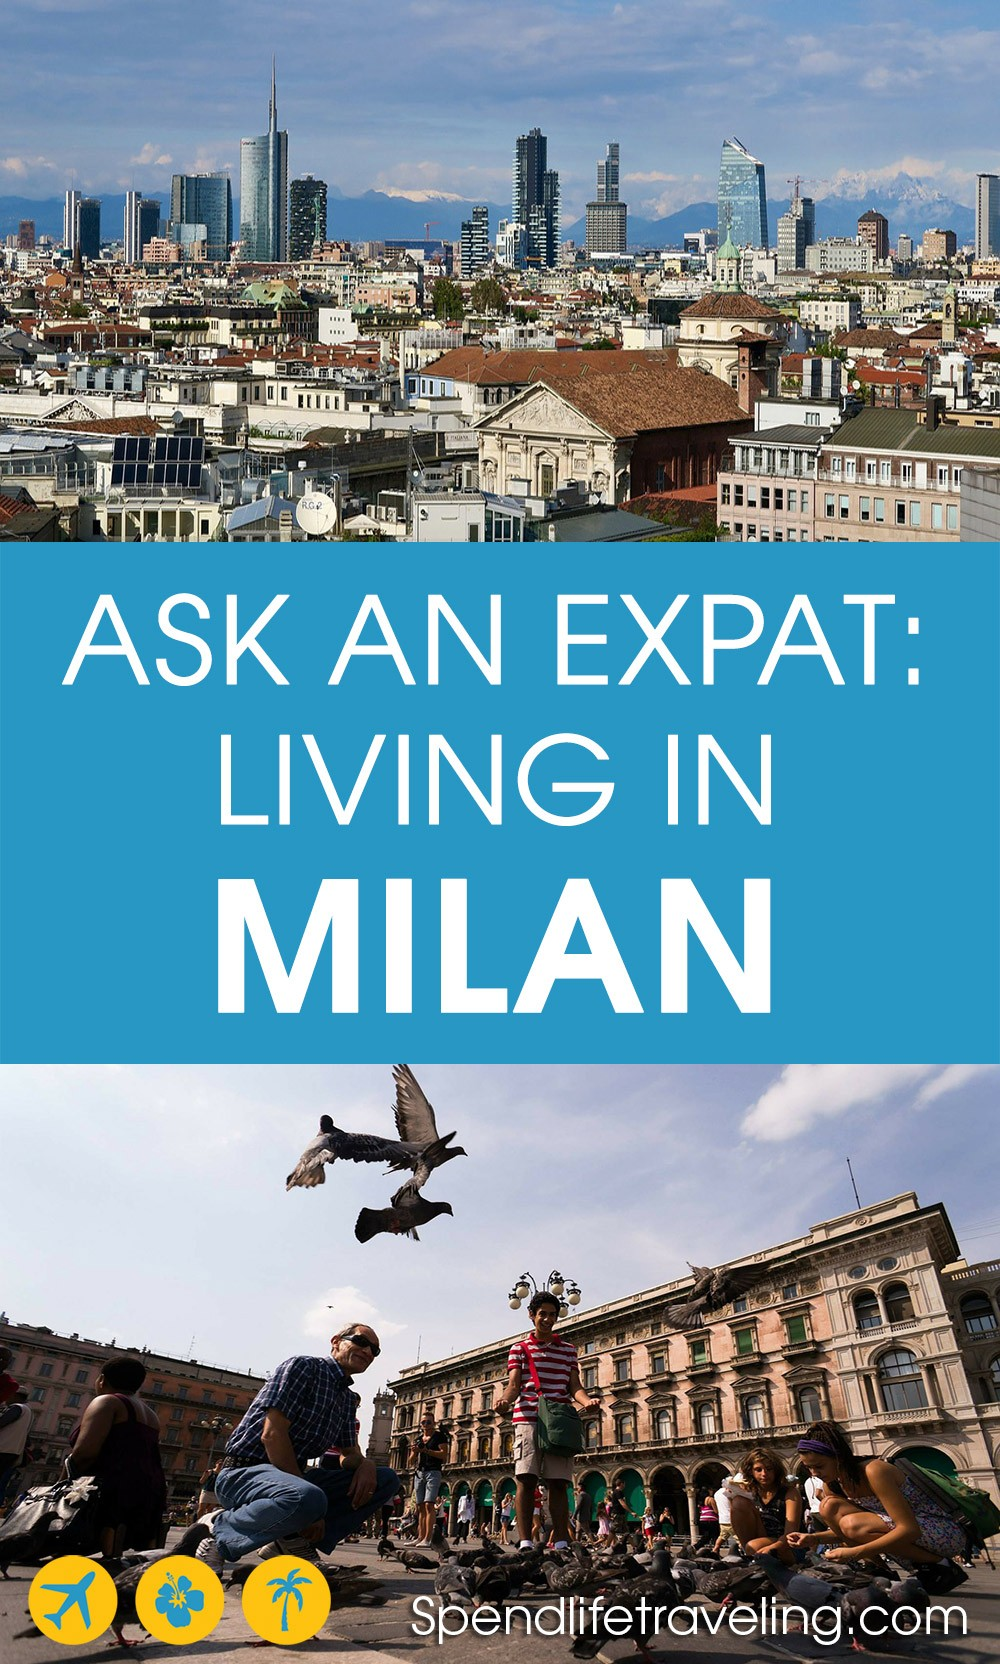 Interview with an expat about what it's really like to move to and live in Milan, Italy. #expatlife #lifeabroad #moveabroad #milan